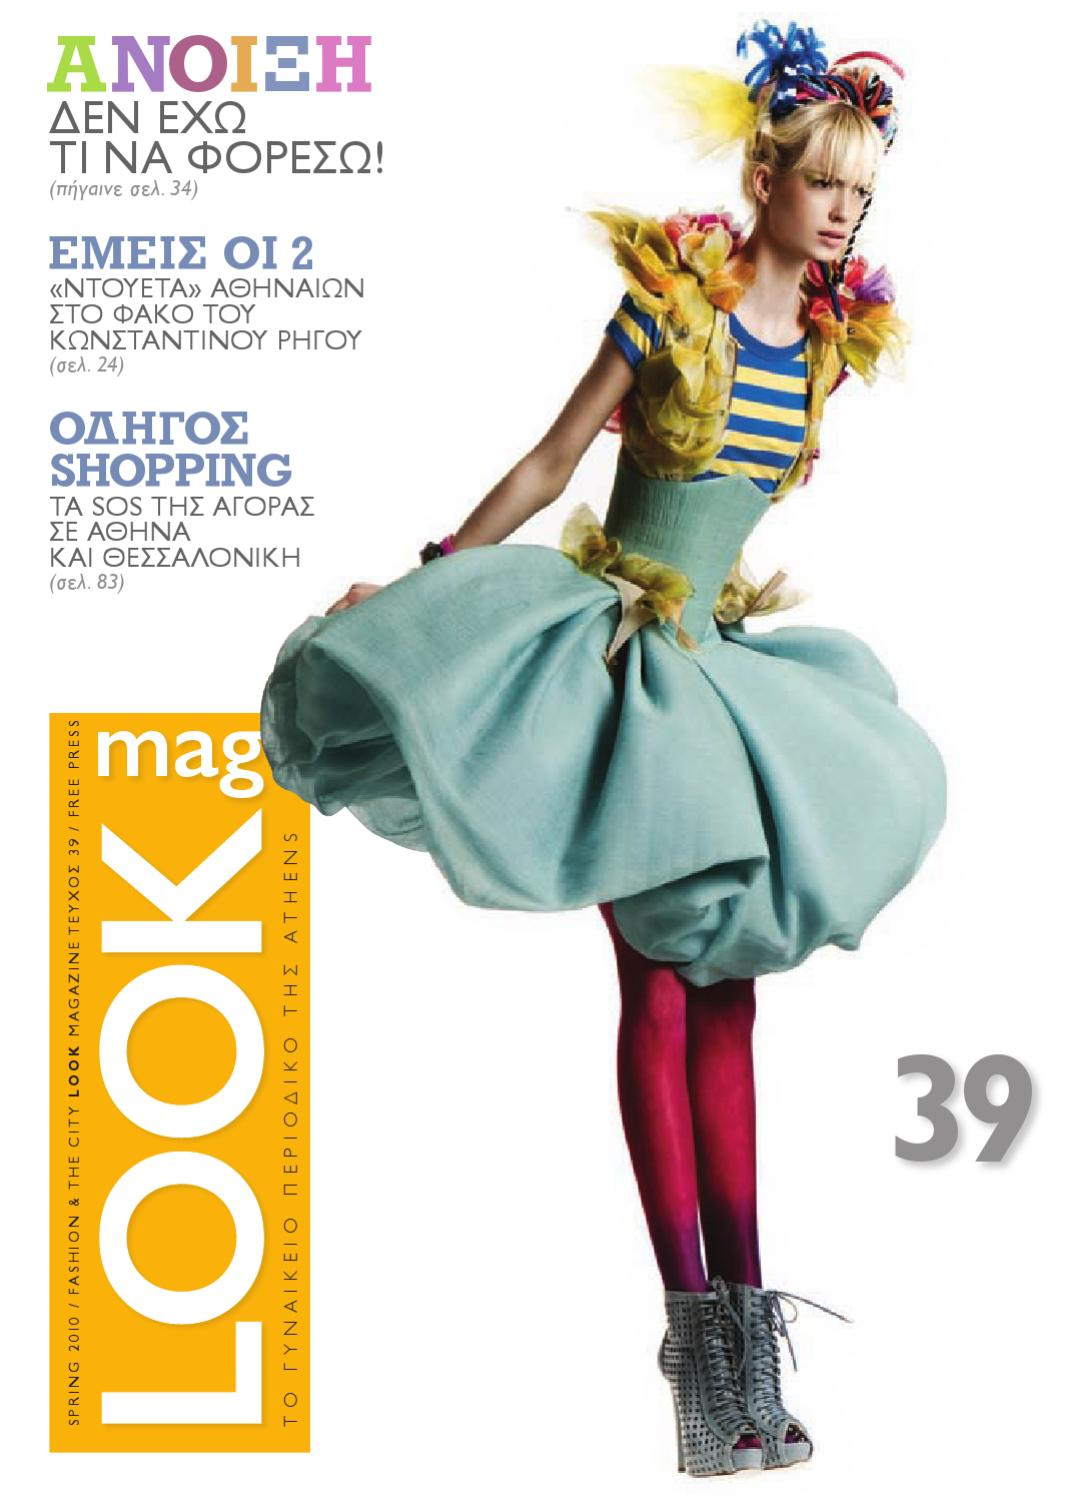 LOOK 39 by Athens Voice - issuu 0e57aaa9890